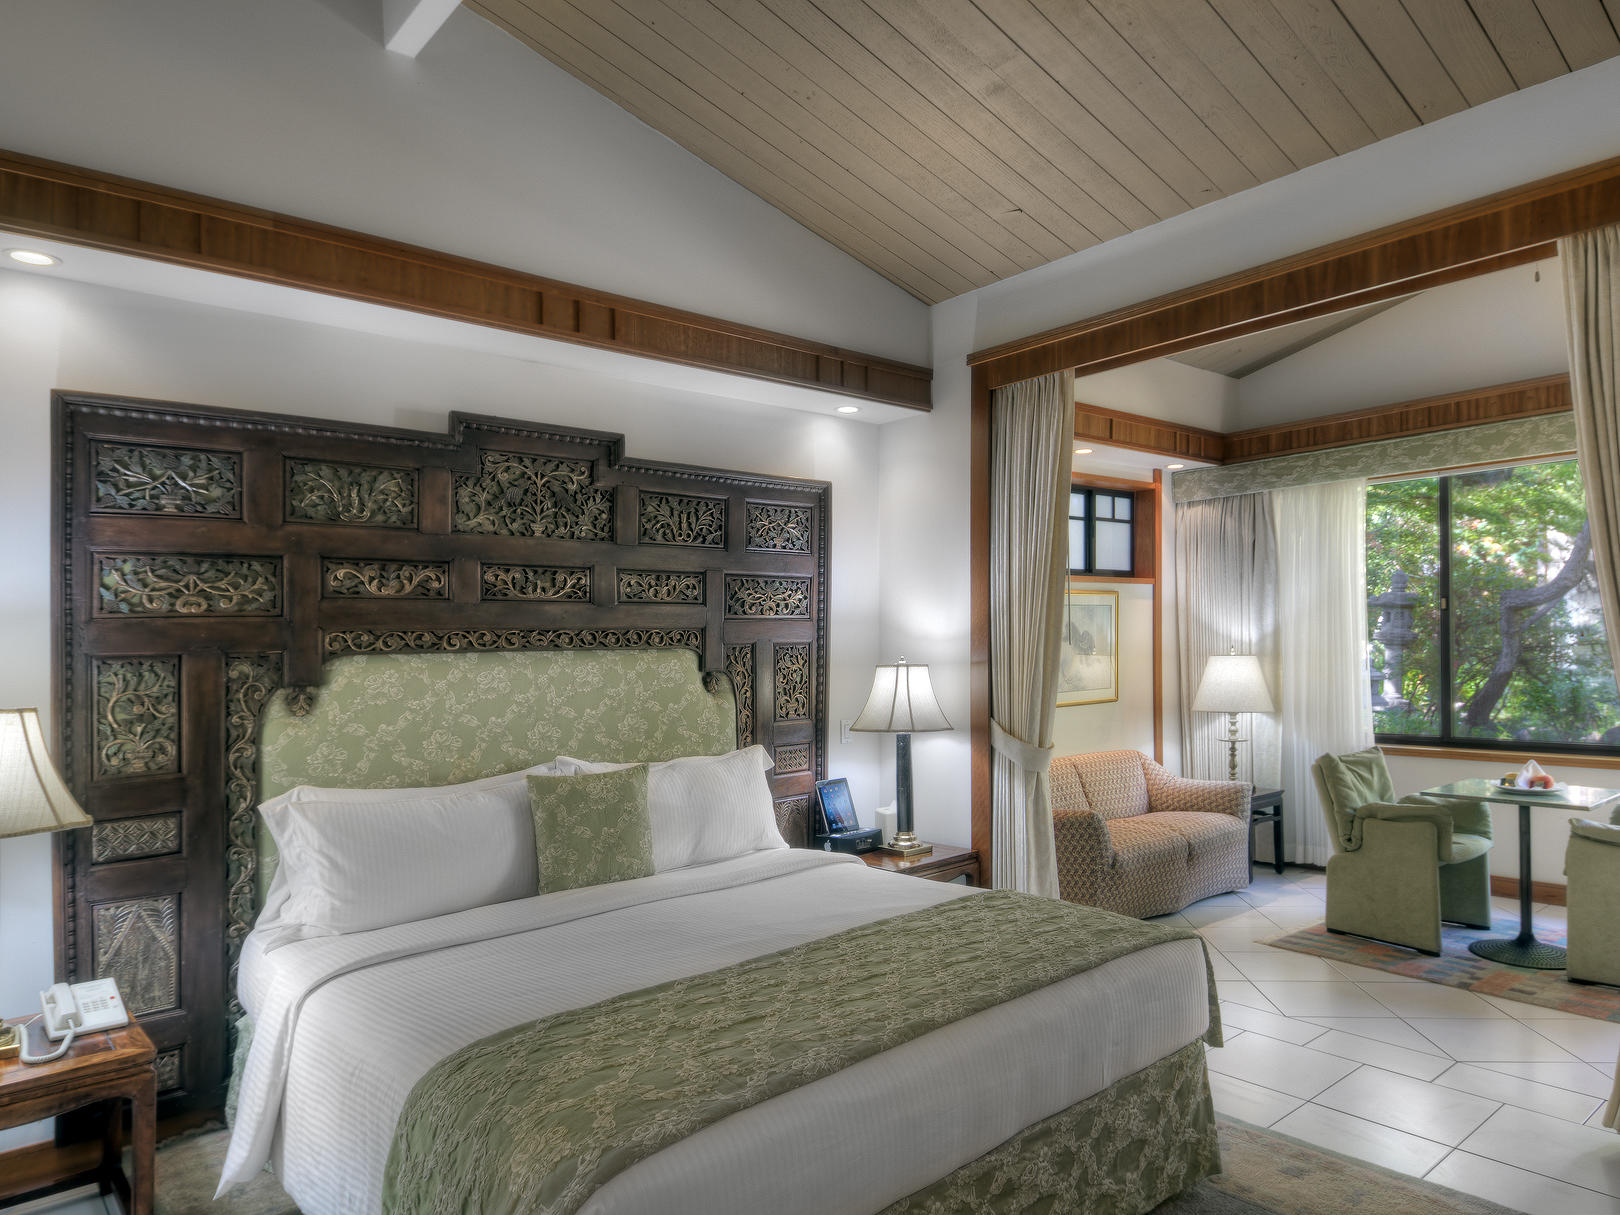 bedroom with white sheets and green decoration